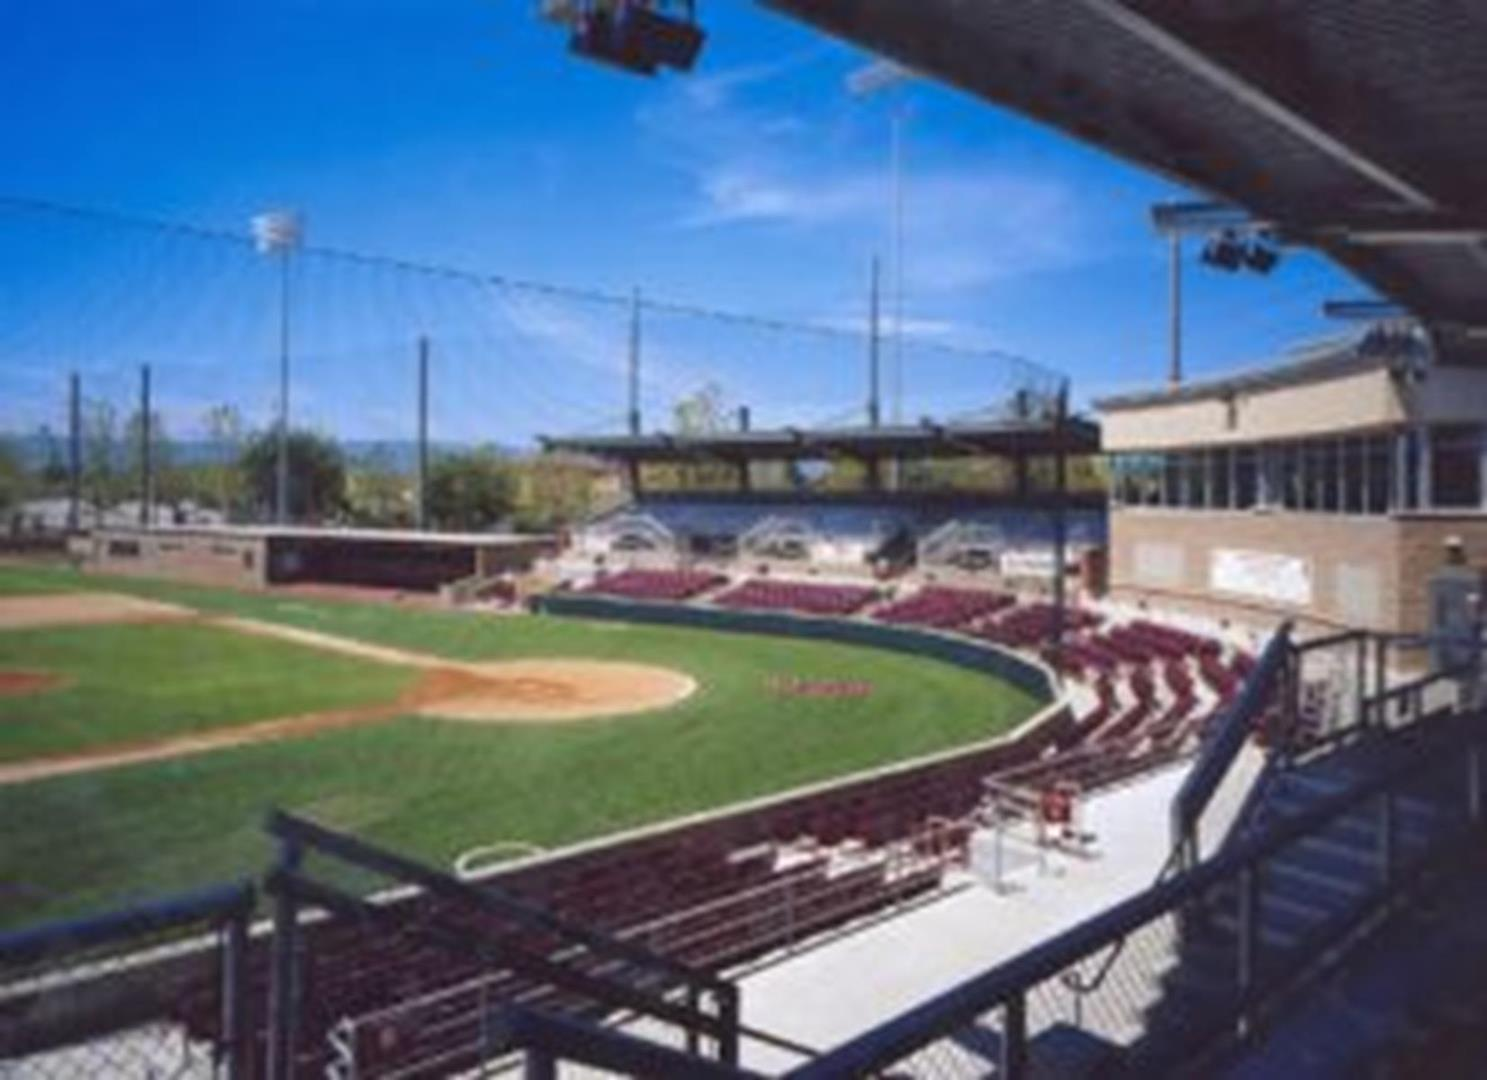 BASEBALL - Stephen Schott Stadium